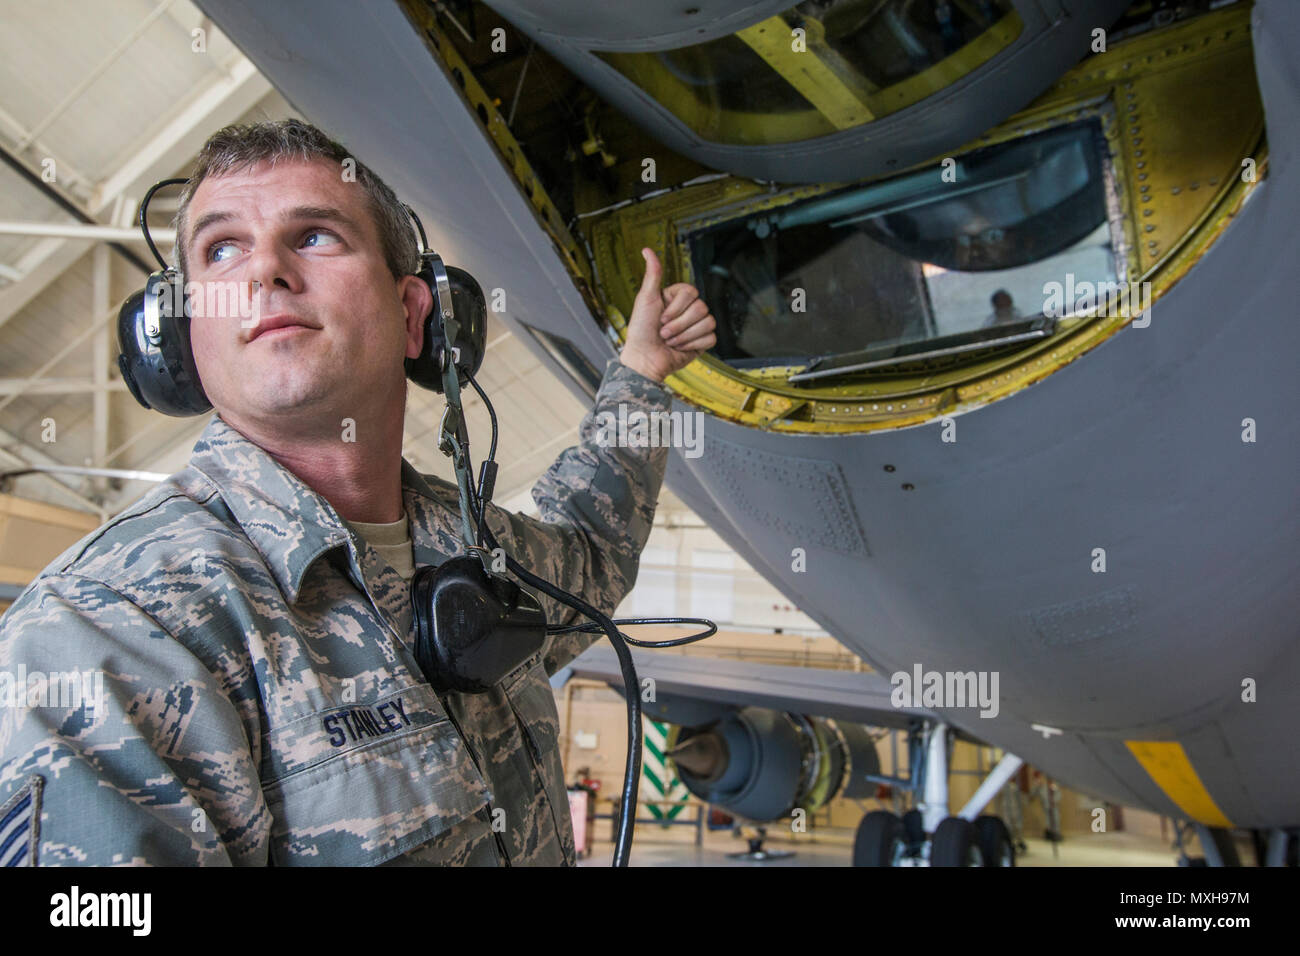 Tech. Sgt. Russ Stanley, KC-135R Stratotanker Crew Chief, 108th Wing, New Jersey Air National Guard, monitors the lowering of a refueling boom for inspection at Joint Base McGuire-Dix-Lakehurst, N.J., Nov. 5, 2016. (U.S. Air National Guard photo by Master Sgt. Mark C. Olsen/Released) - Stock Image